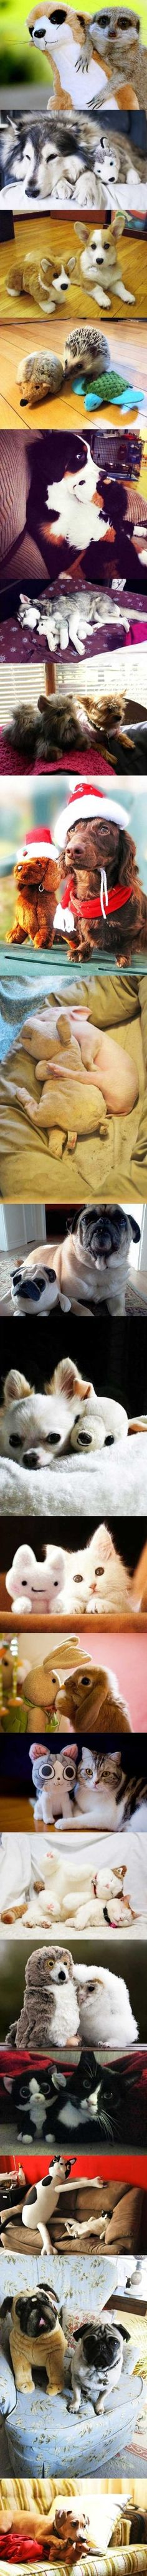 Funny - Animals with stuffed animals of themselves - www.funny-pictures-blog.com